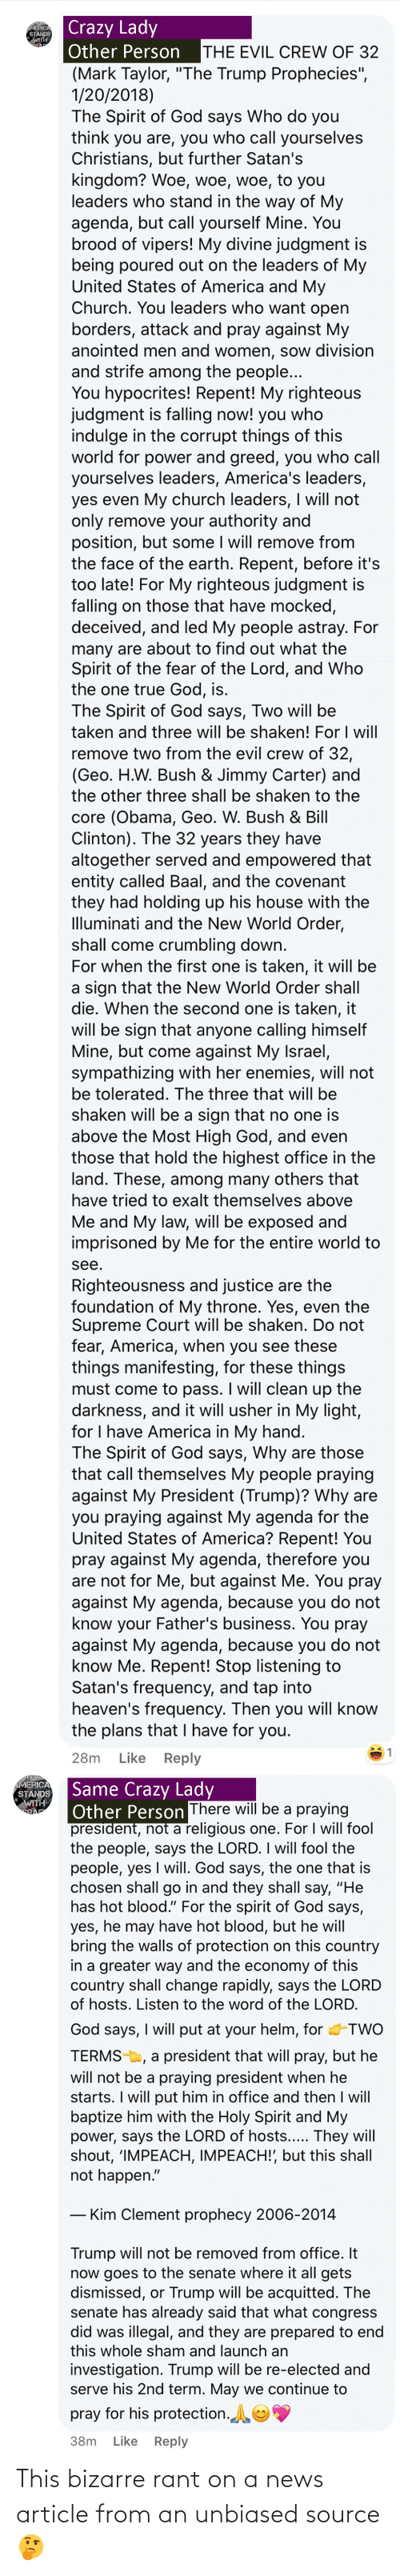 """Supreme Court: Crazy Lady  Other Person  MERICA  STANDS  WITH  THE EVIL CREW OF 32  (Mark Taylor, """"The Trump Prophecies"""",  1/20/2018)  The Spirit of God says Who do you  think you are, you who call yourselves  Christians, but further Satan's  kingdom? Woe, woe, woe, to you  leaders who stand in the way of My  agenda, but call yourself Mine. You  brood of vipers! My divine judgment is  being poured out on the leaders of My  United States of America and My  Church. You leaders who want open  borders, attack and pray against My  anointed men and women, sow division  and strife among the people...  You hypocrites! Repent! My righteous  judgment is falling now! you who  indulge in the corrupt things of this  world for power and greed, you who call  yourselves leaders, America's leaders,  yes even My church leaders, I will not  only remove your authority and  position, but some I will remove from  the face of the earth. Repent, before it's  too late! For My righteous judgment is  falling on those that have mocked,  deceived, and led My people astray. For  many are about to find out what the  Spirit of the fear of the Lord, and Who  the one true God, is.  The Spirit of God says, Two will be  taken and three will be shaken! For I will  remove two from the evil crew of 32,  (Geo. H.W. Bush & Jimmy Carter) and  the other three shall be shaken to the  core (Obama, Geo. W. Bush & Bill  Clinton). The 32 years they have  altogether served and empowered that  entity called Baal, and the covenant  they had holding up his house with the  Illuminati and the New World Order,  shall come crumbling down.  For when the first one is taken, it will be  a sign that the New World Order shall  die. When the second one is taken, it  will be sign that anyone calling himself  Mine, but come against My Israel,  sympathizing with her enemies, will not  be tolerated. The three that will be  shaken will be a sign that no one is  above the Most High God, and even  those that hold the highest office i"""